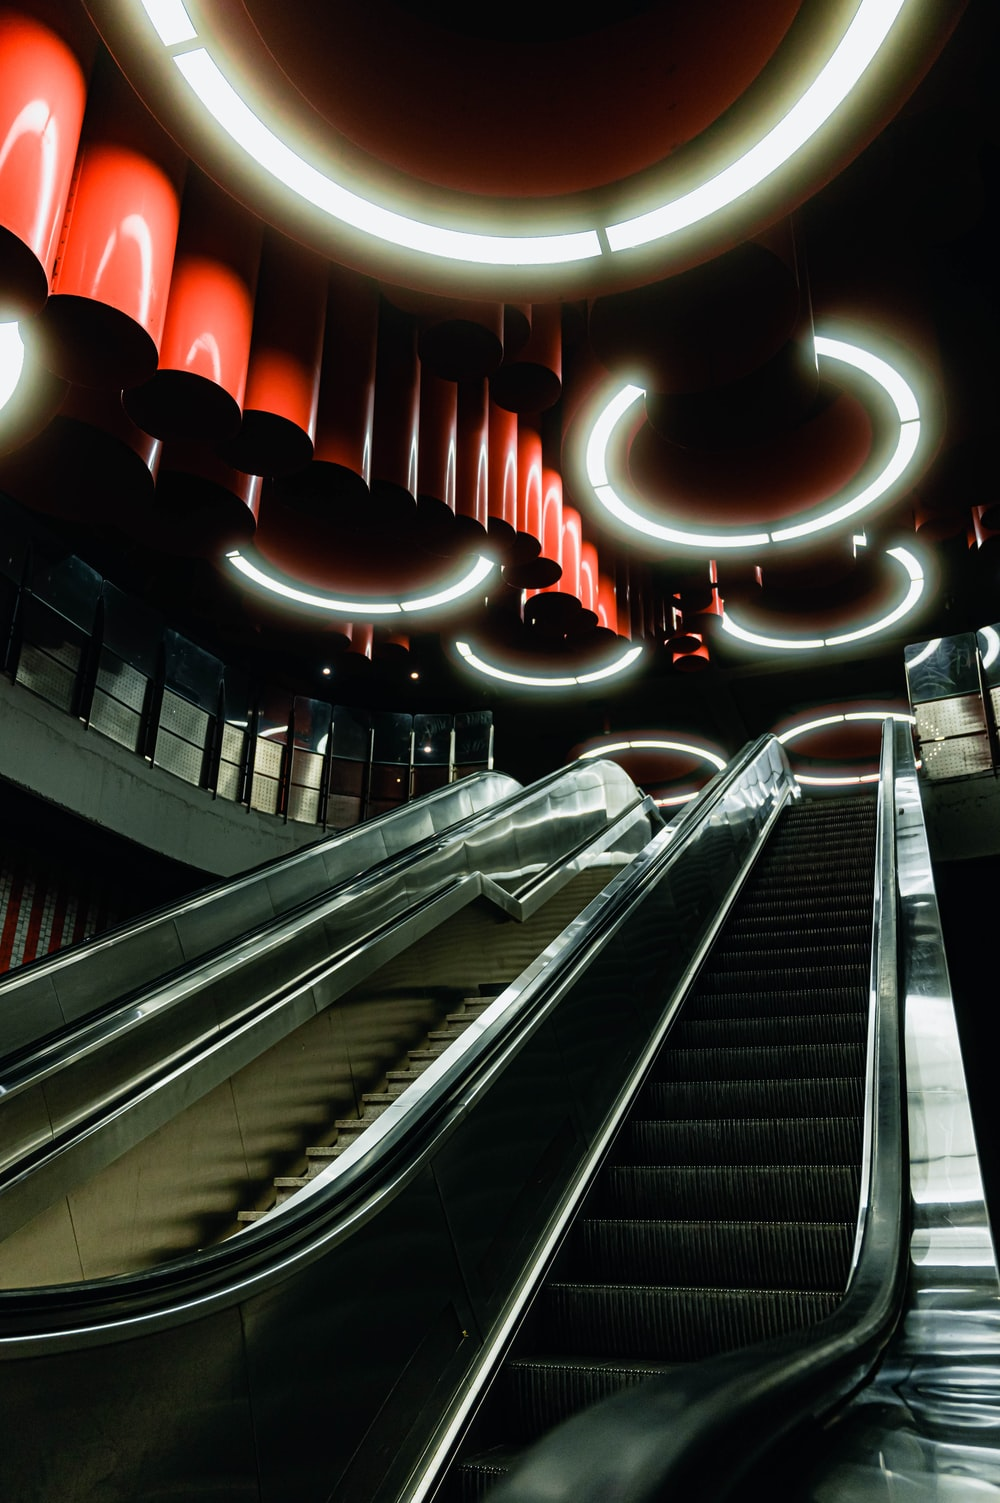 black escalator with red lights